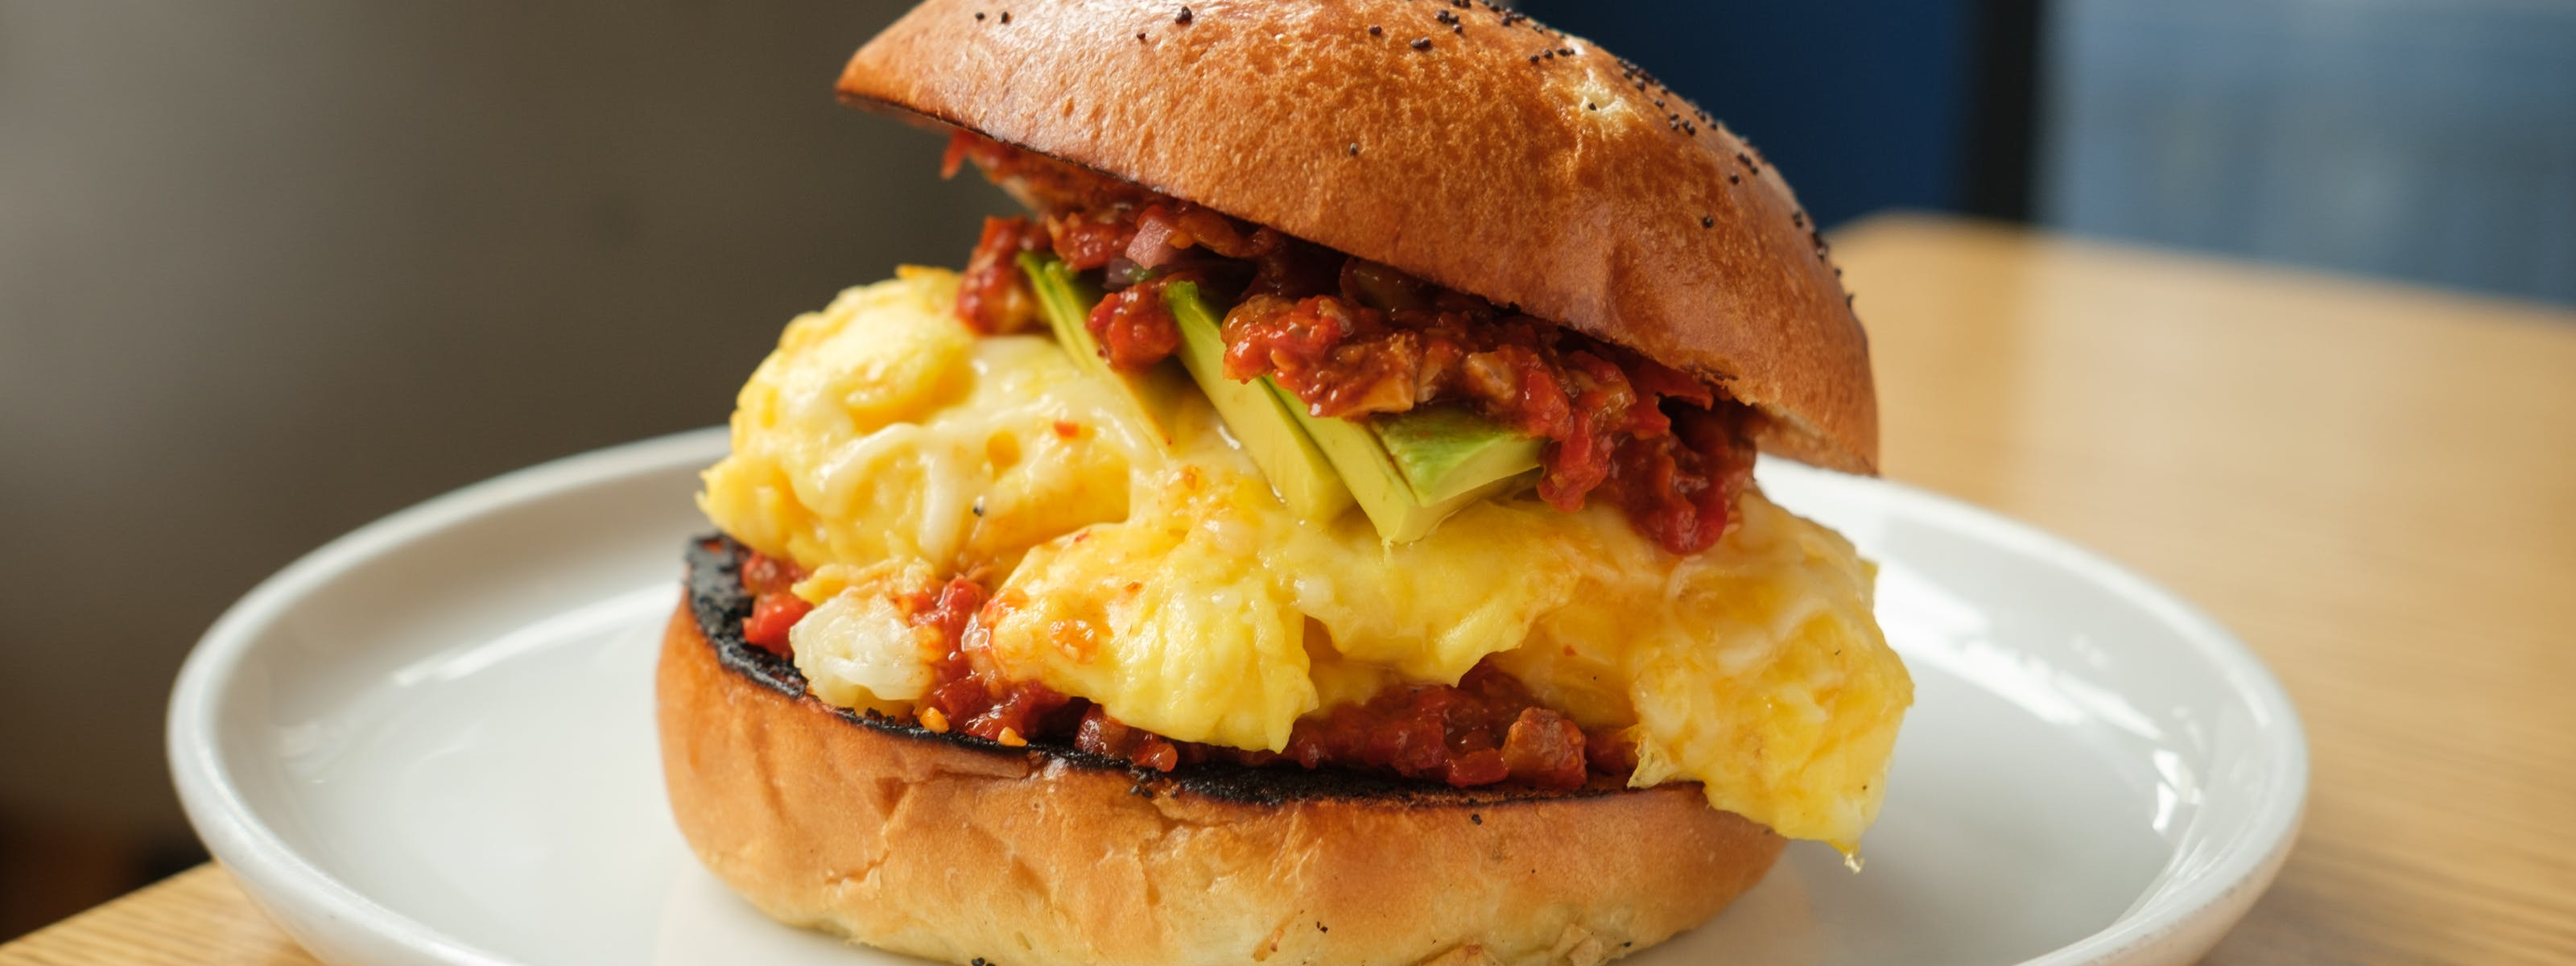 The Best Breakfast Sandwiches In NYC - New York - The Infatuation